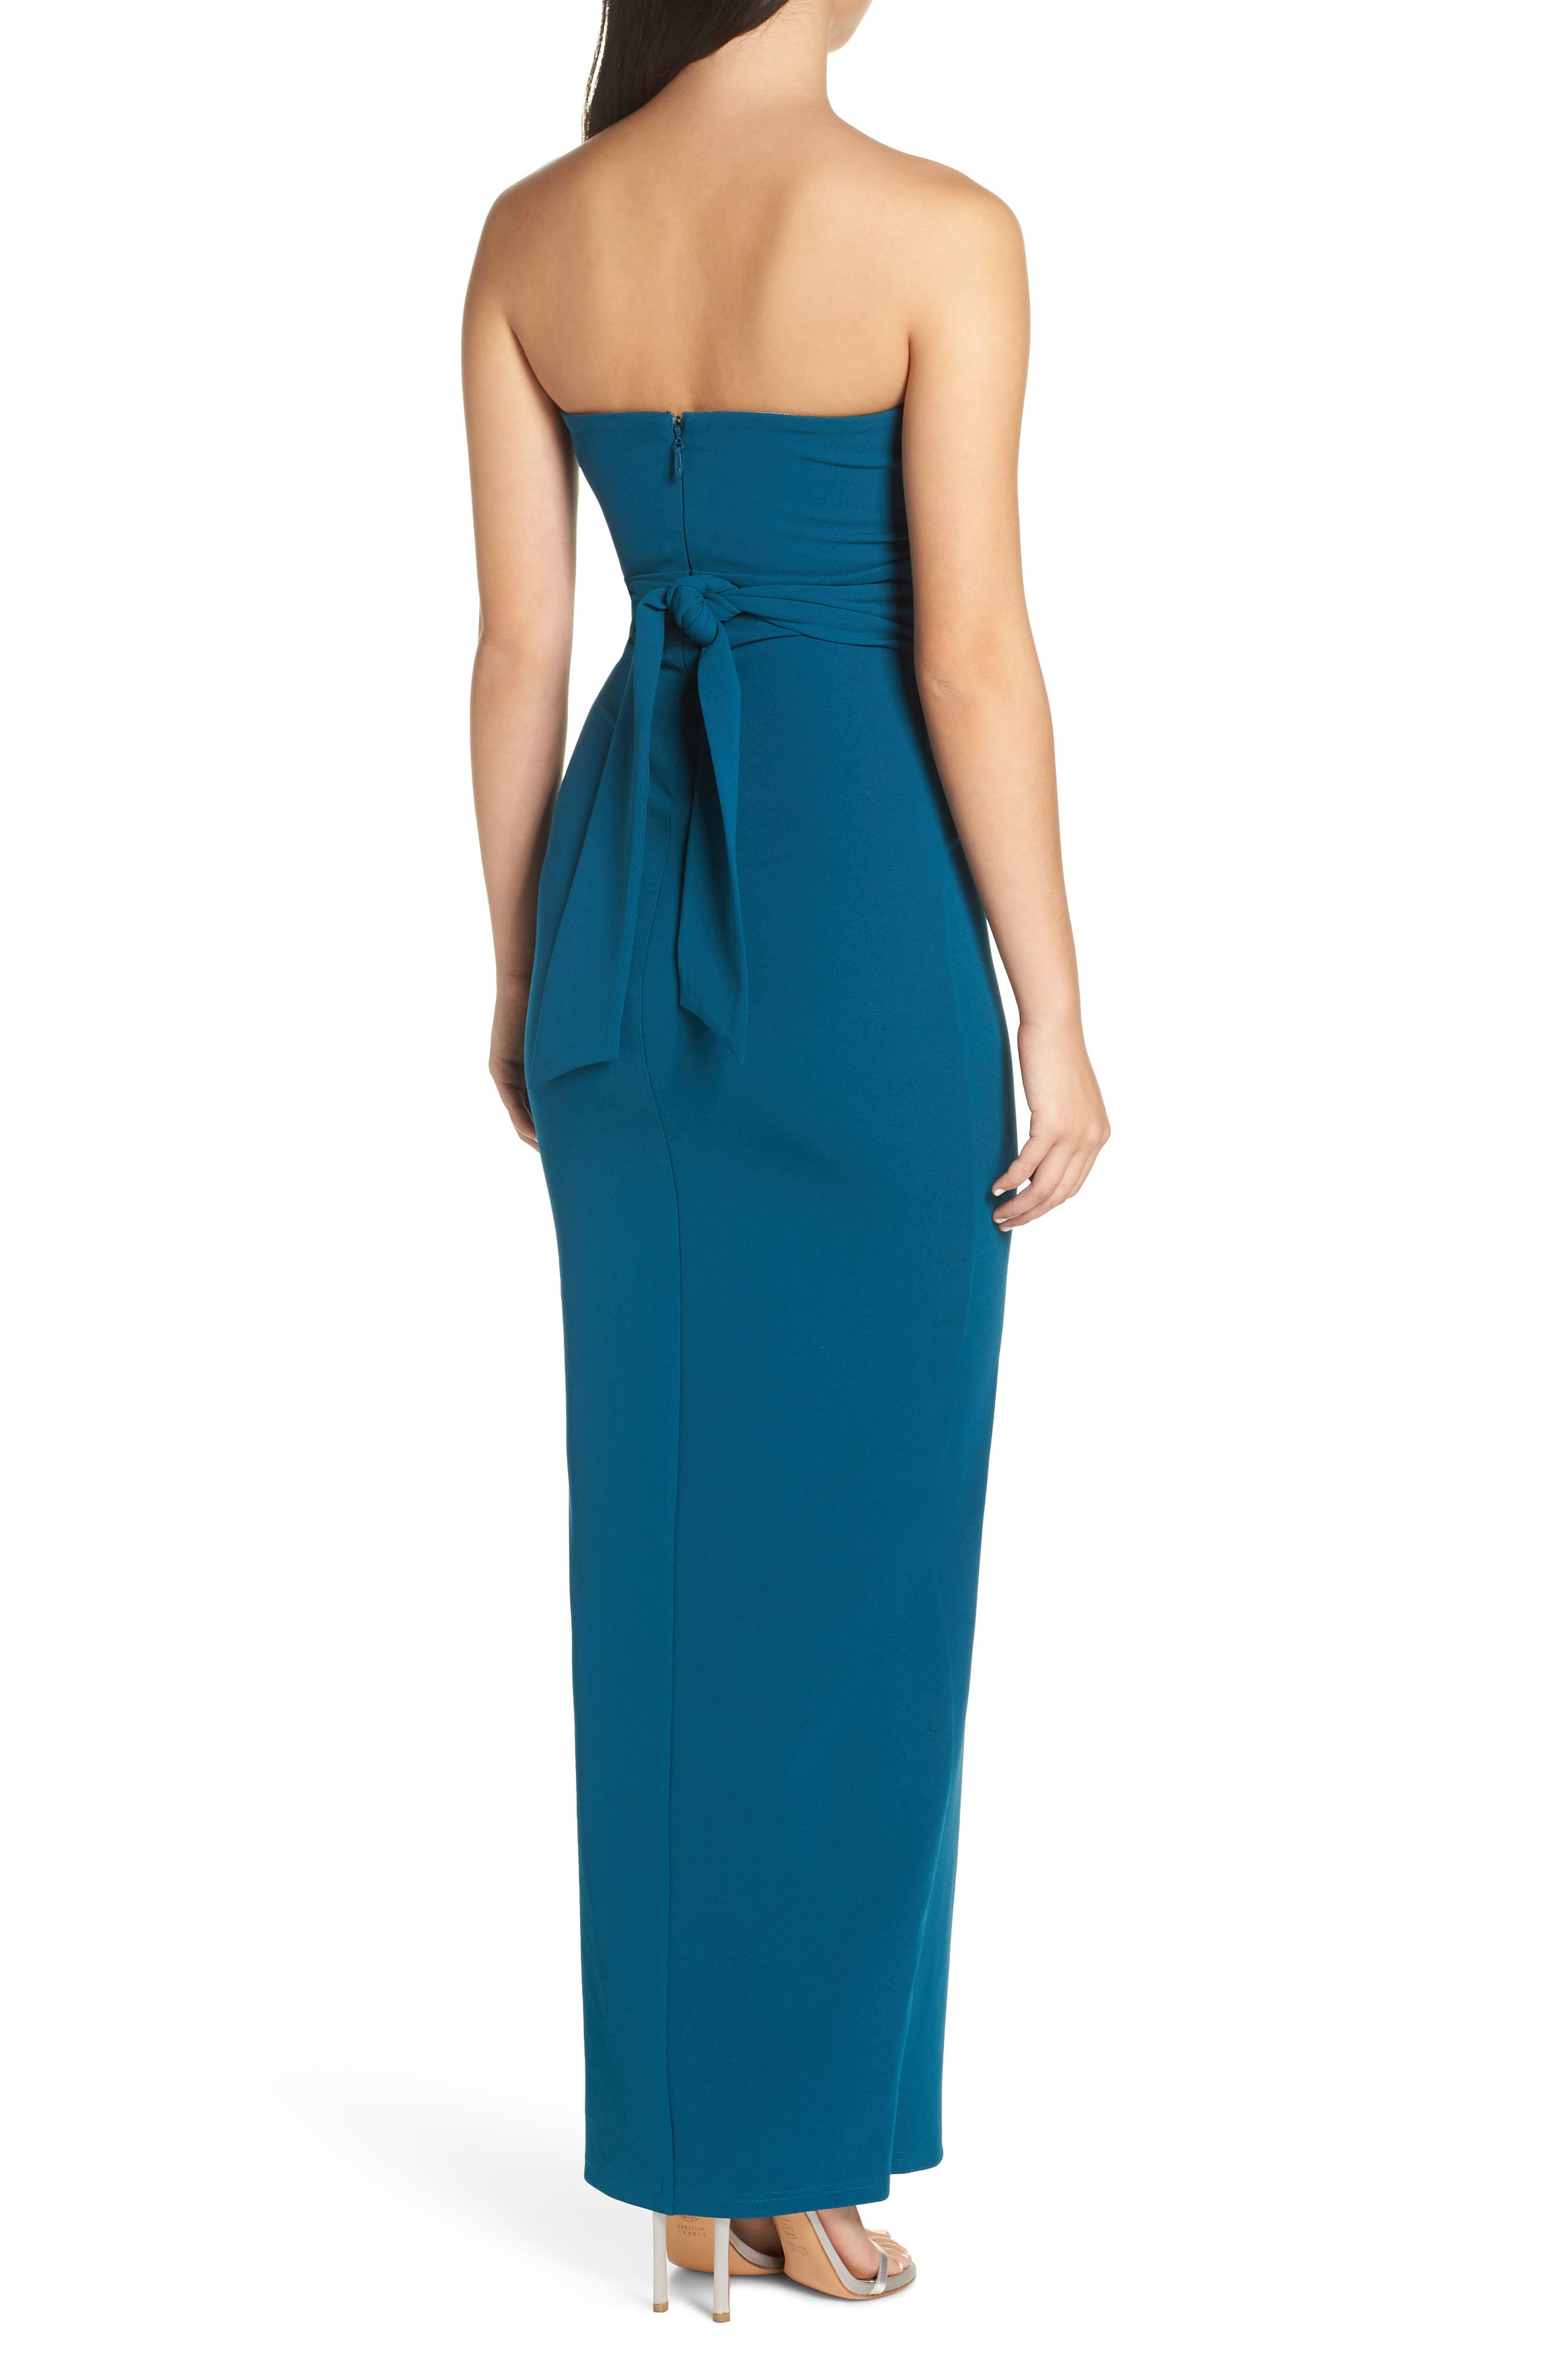 Own the Night Strapless Maxi Dress,                             Alternate thumbnail 2, color,                             TURQUOISE